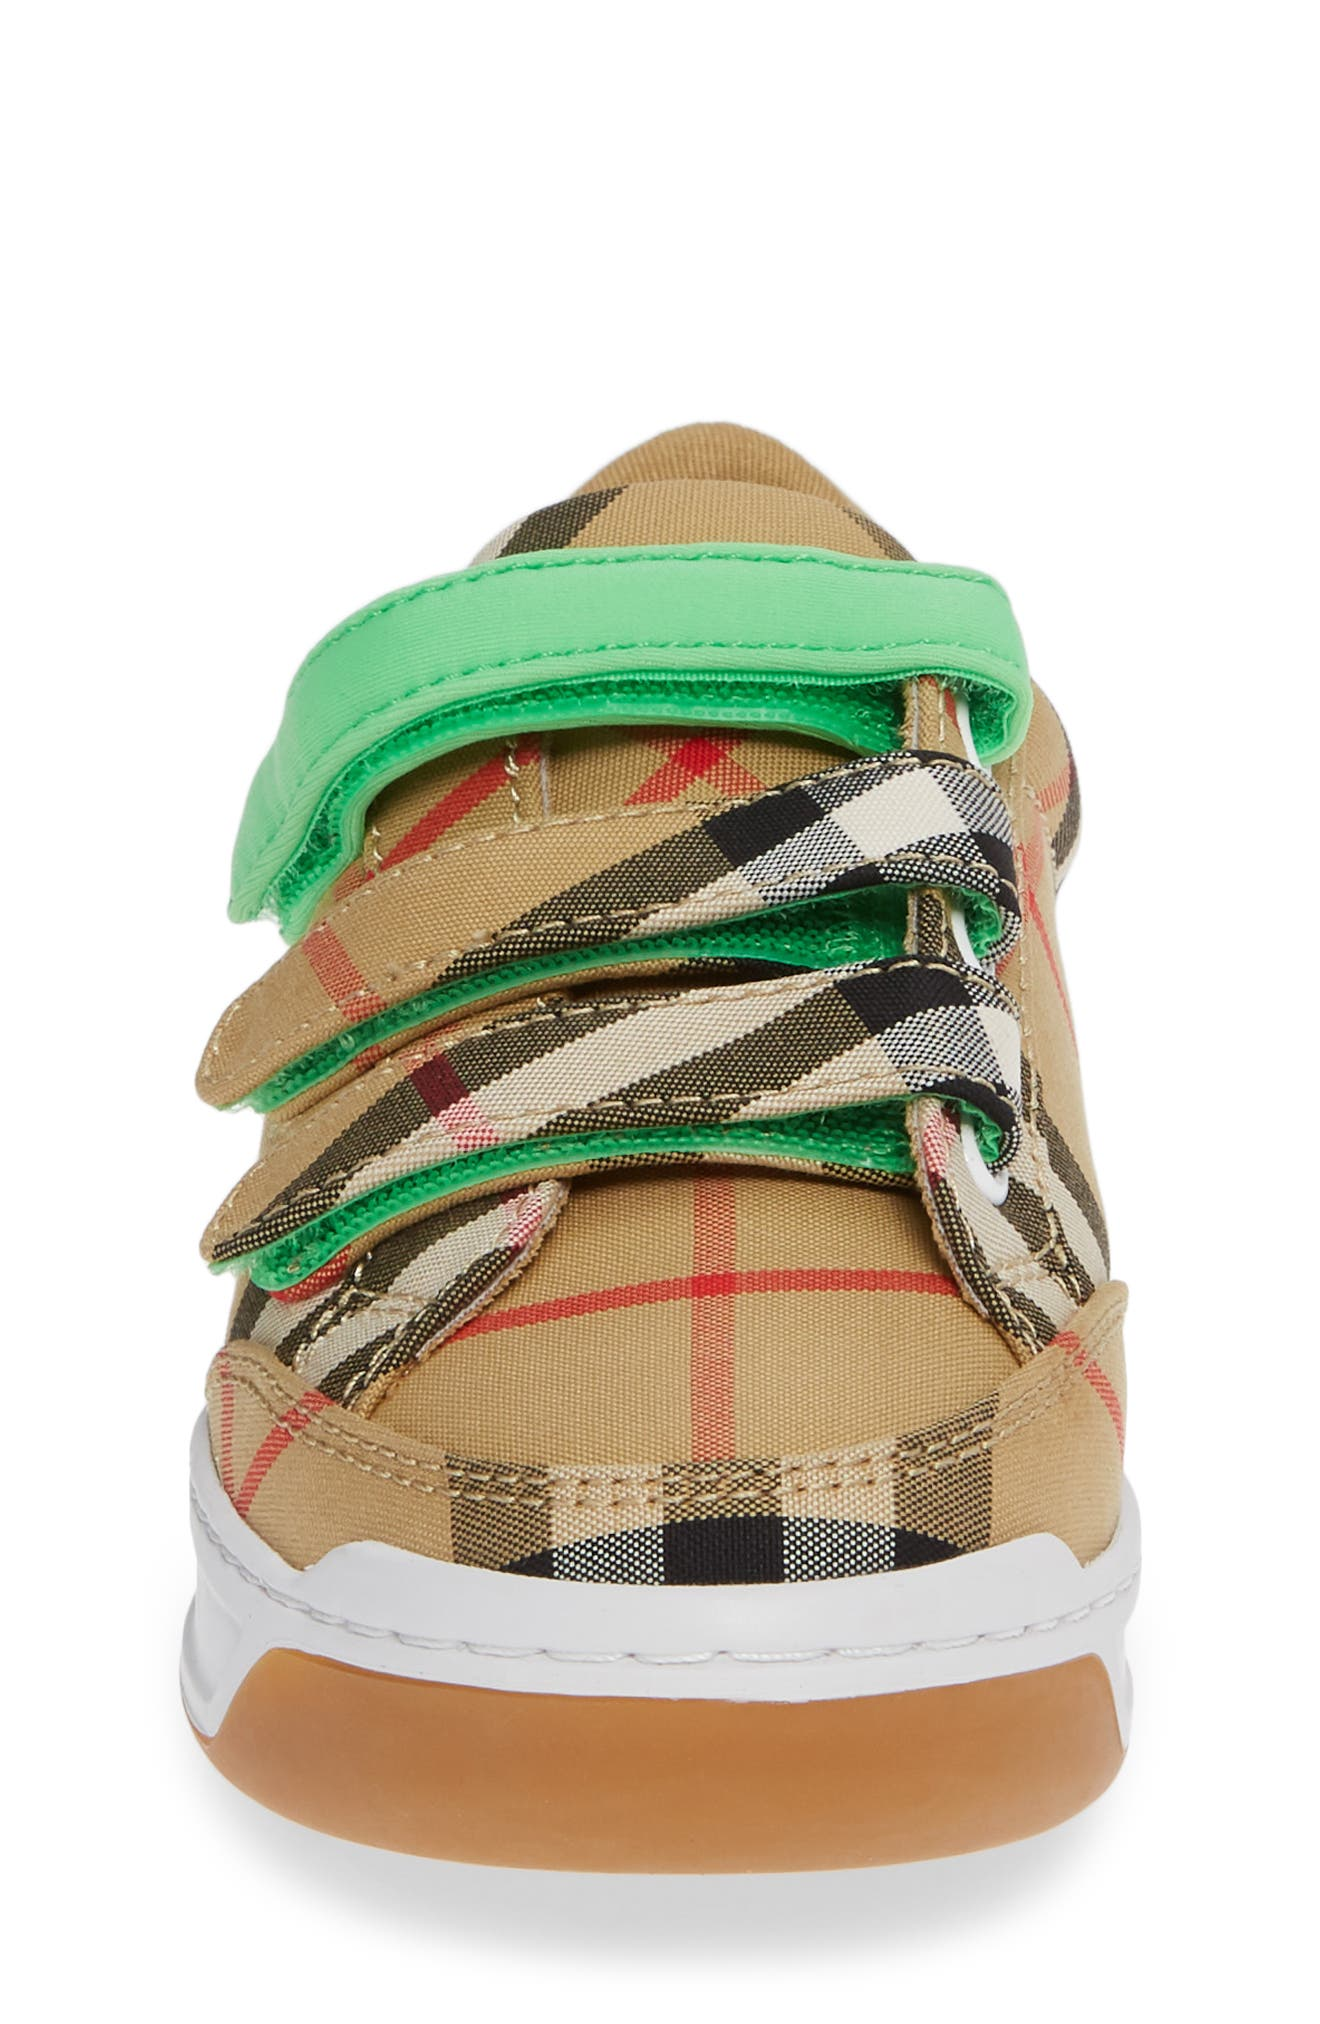 BURBERRY, Groves Low Top Sneaker, Alternate thumbnail 4, color, NEON GREEN